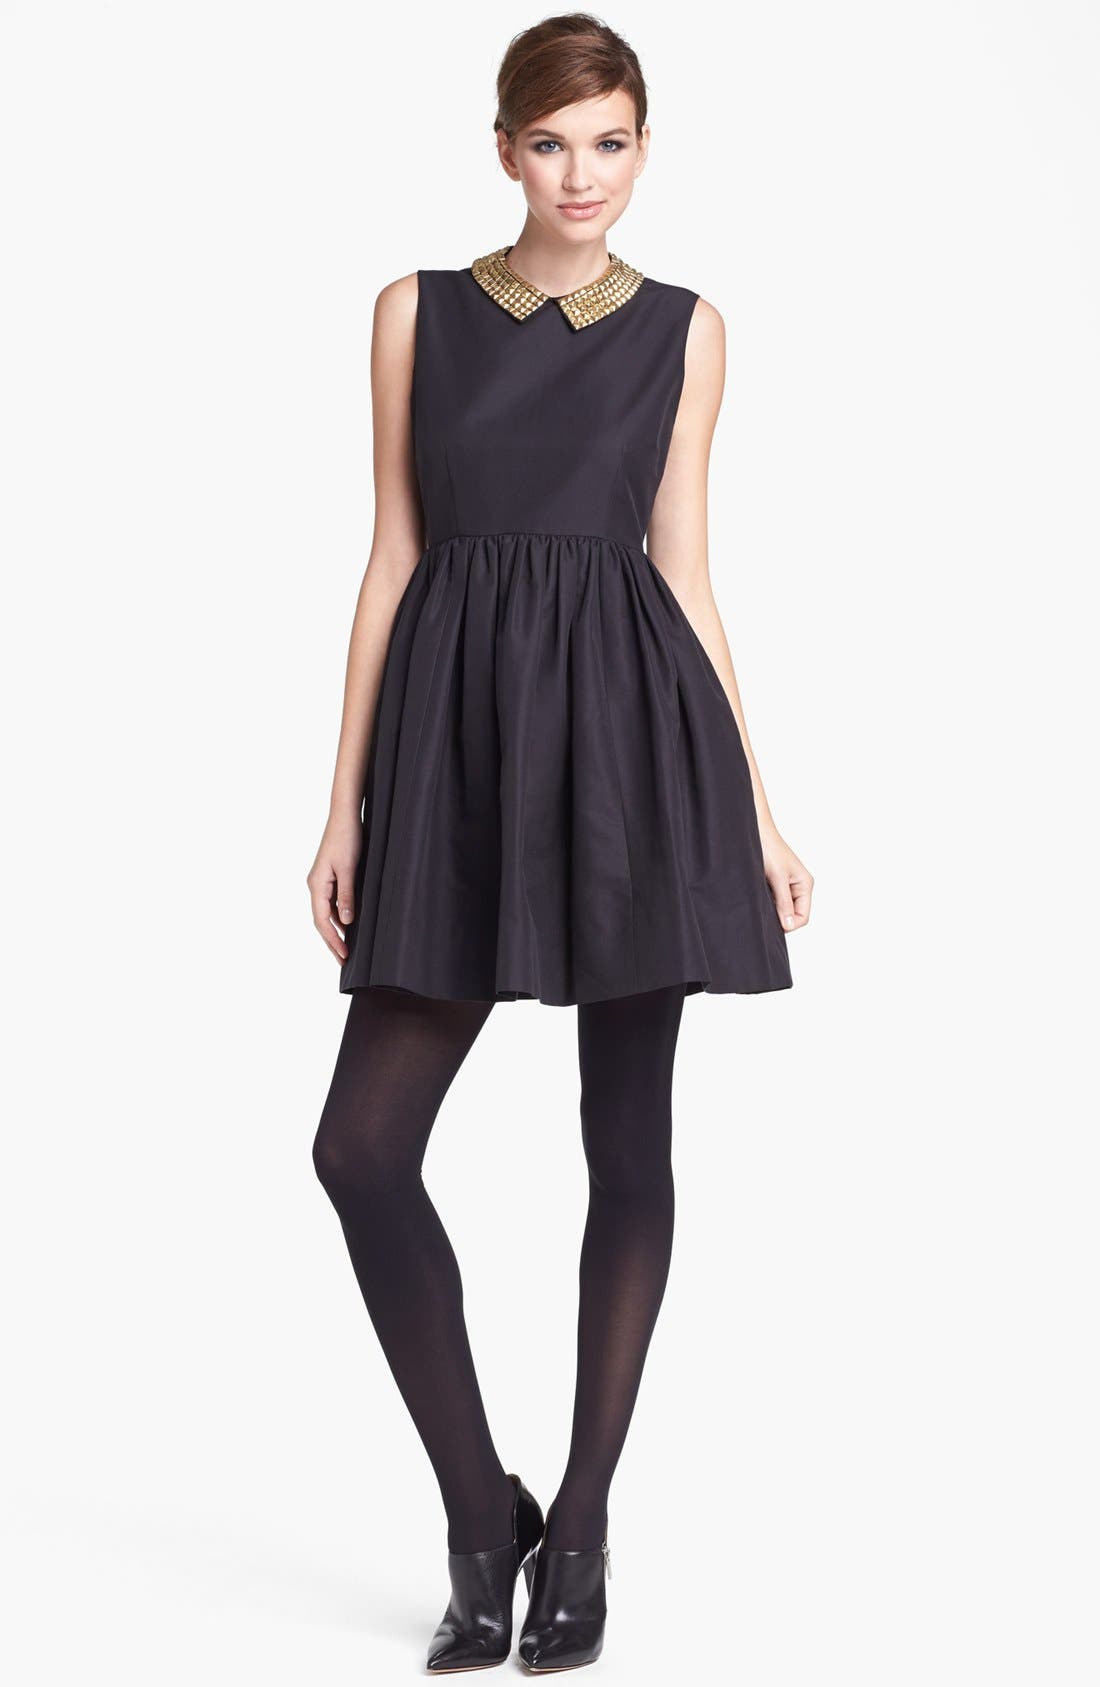 Alternate Image 1 Selected - kate spade new york 'laurence' cotton blend fit & flare minidress